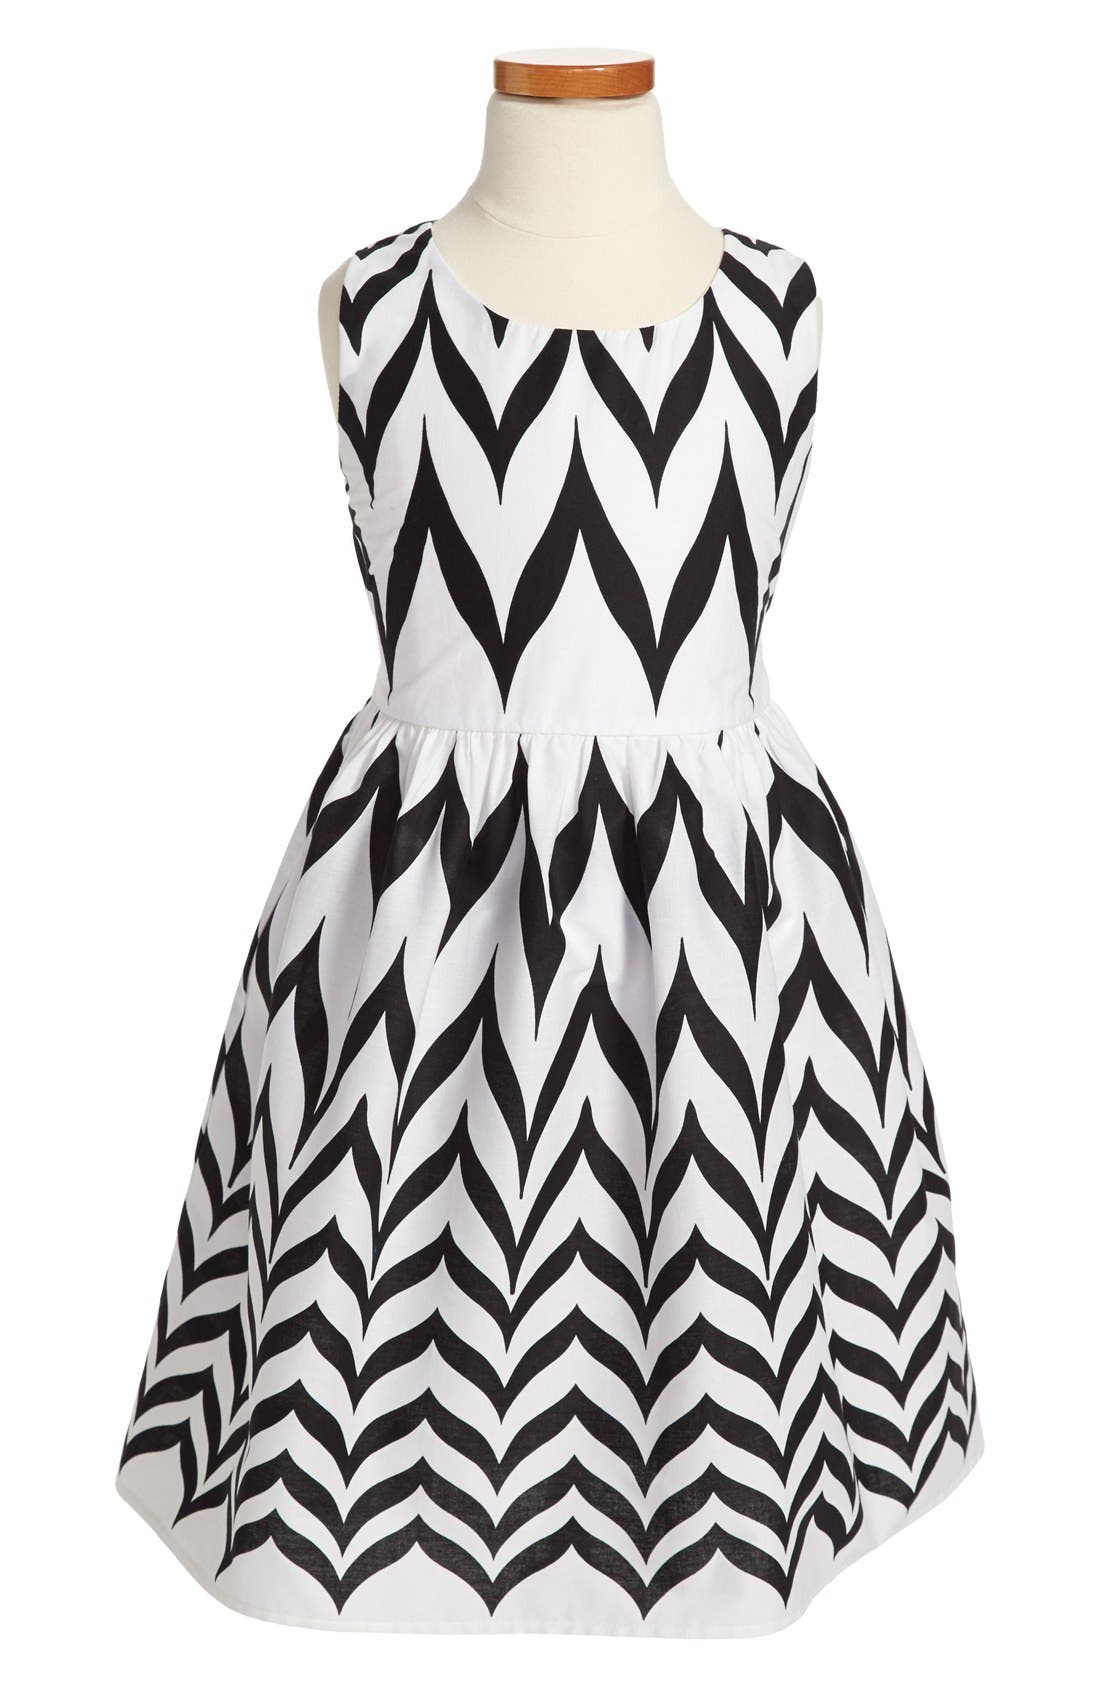 Alternate Image 1 Selected - Roxette Chevron Print Sleeveless Dress (Big Girls)